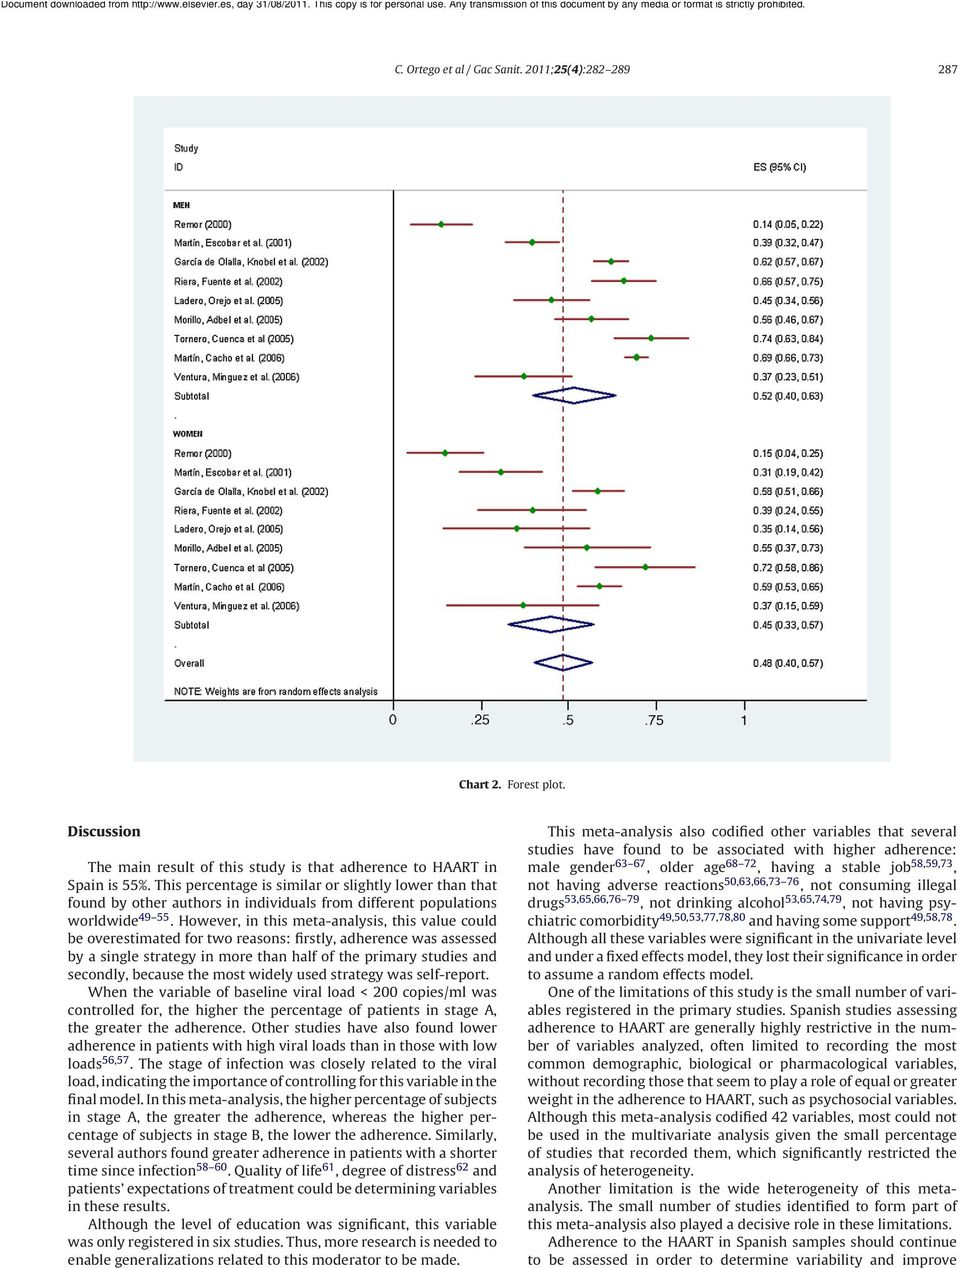 However, in this meta-analysis, this value could be overestimated for two reasons: firstly, adherence was assessed by a single strategy in more than half of the primary studies and secondly, because